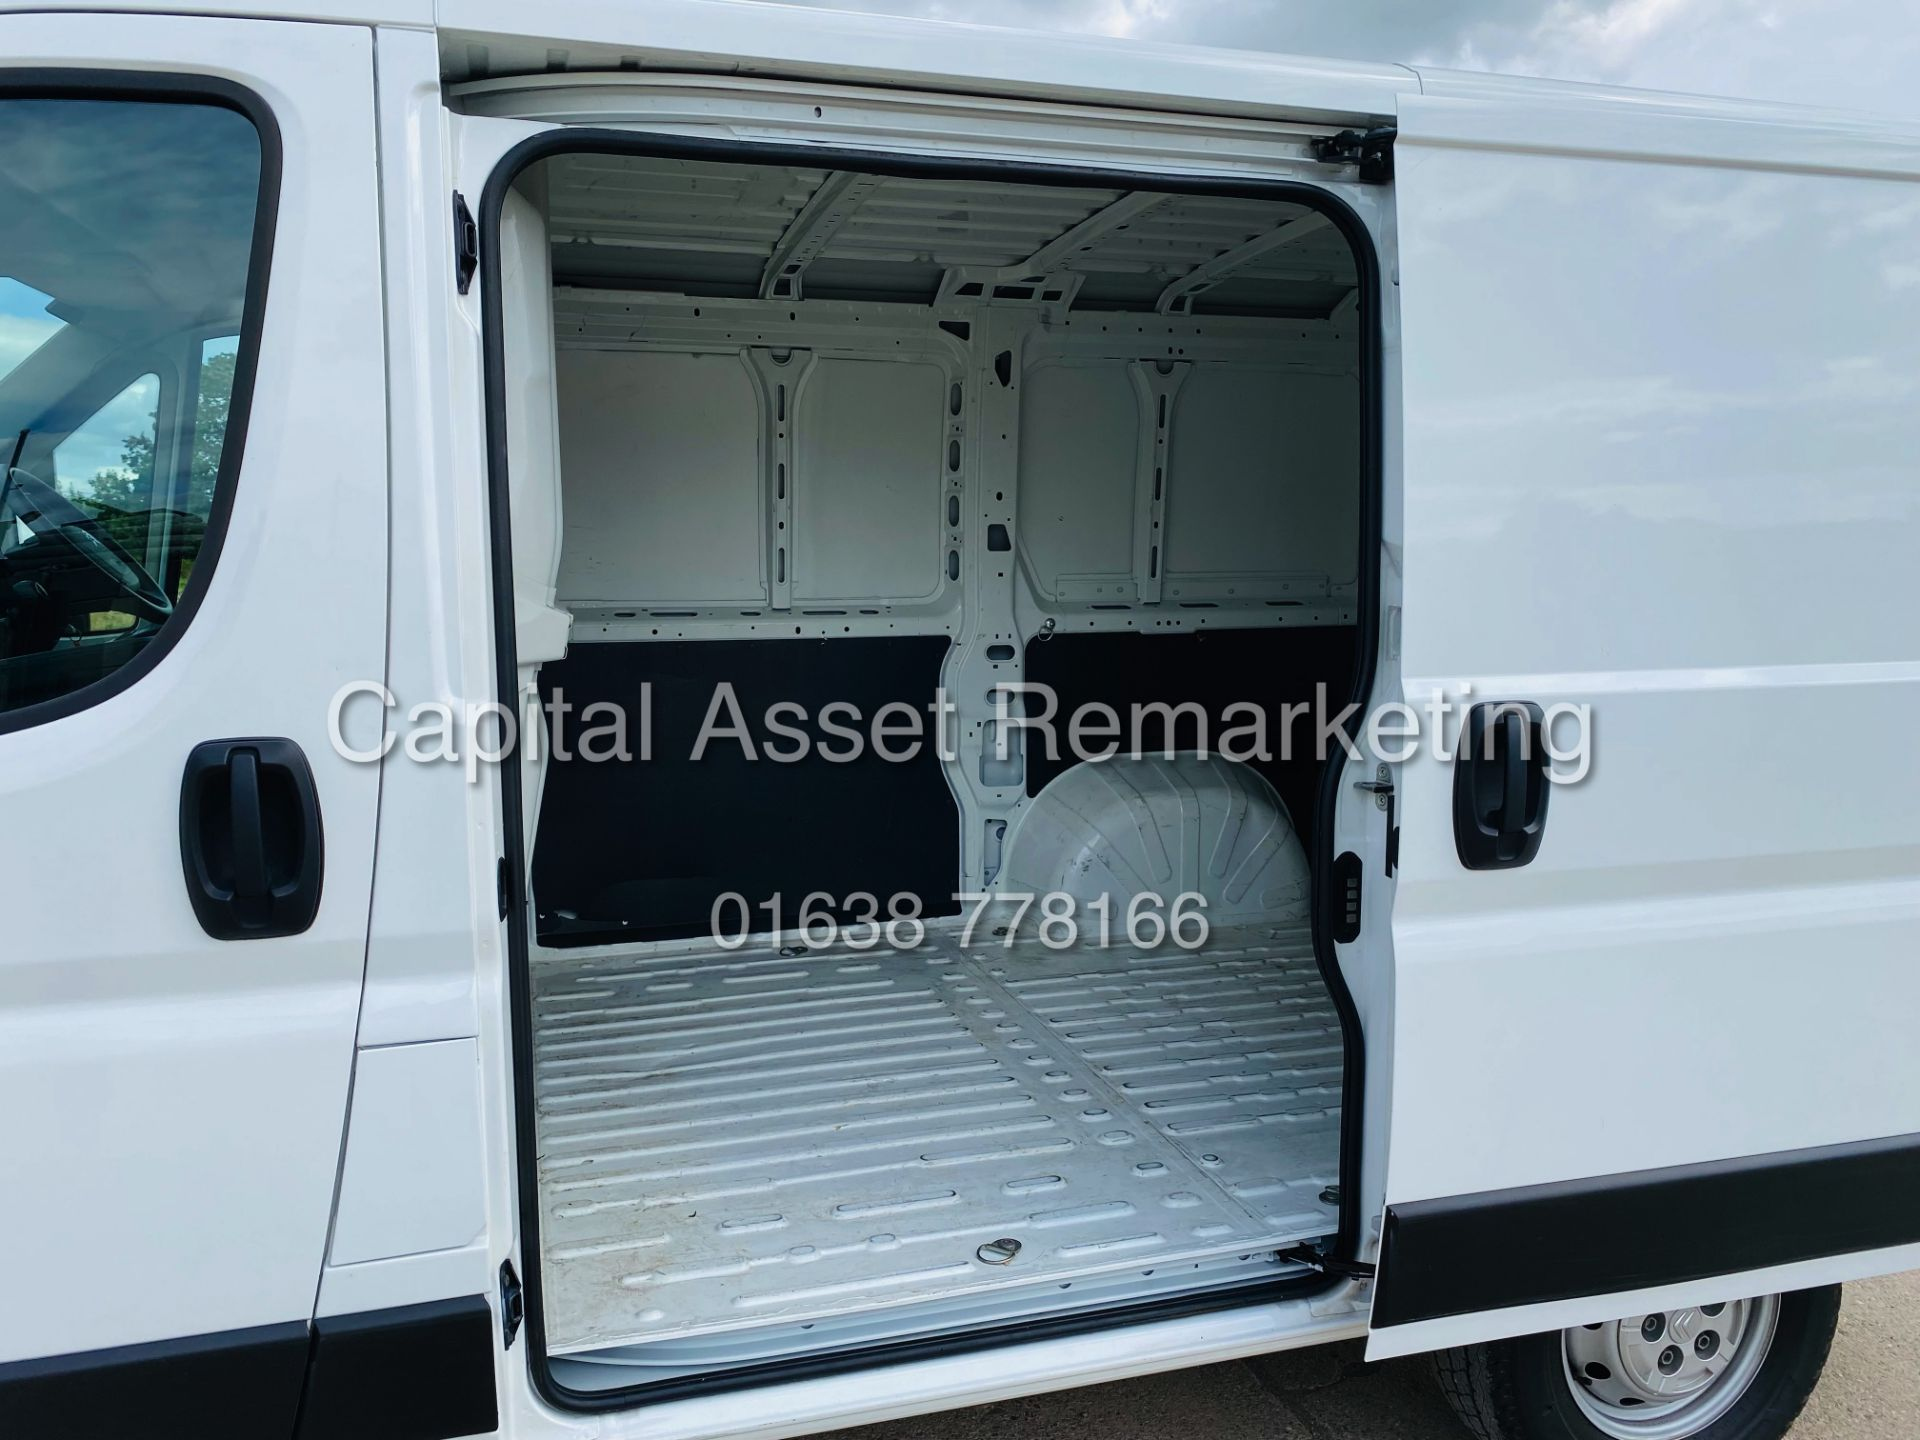 """ON SALE CITROEN RELAY 2.0 BLUE-HDI """"ENTERPRISE"""" L1H1 (2019 MODEL) AIR CON 6882 MILES ON THE CLOCK - Image 27 of 28"""